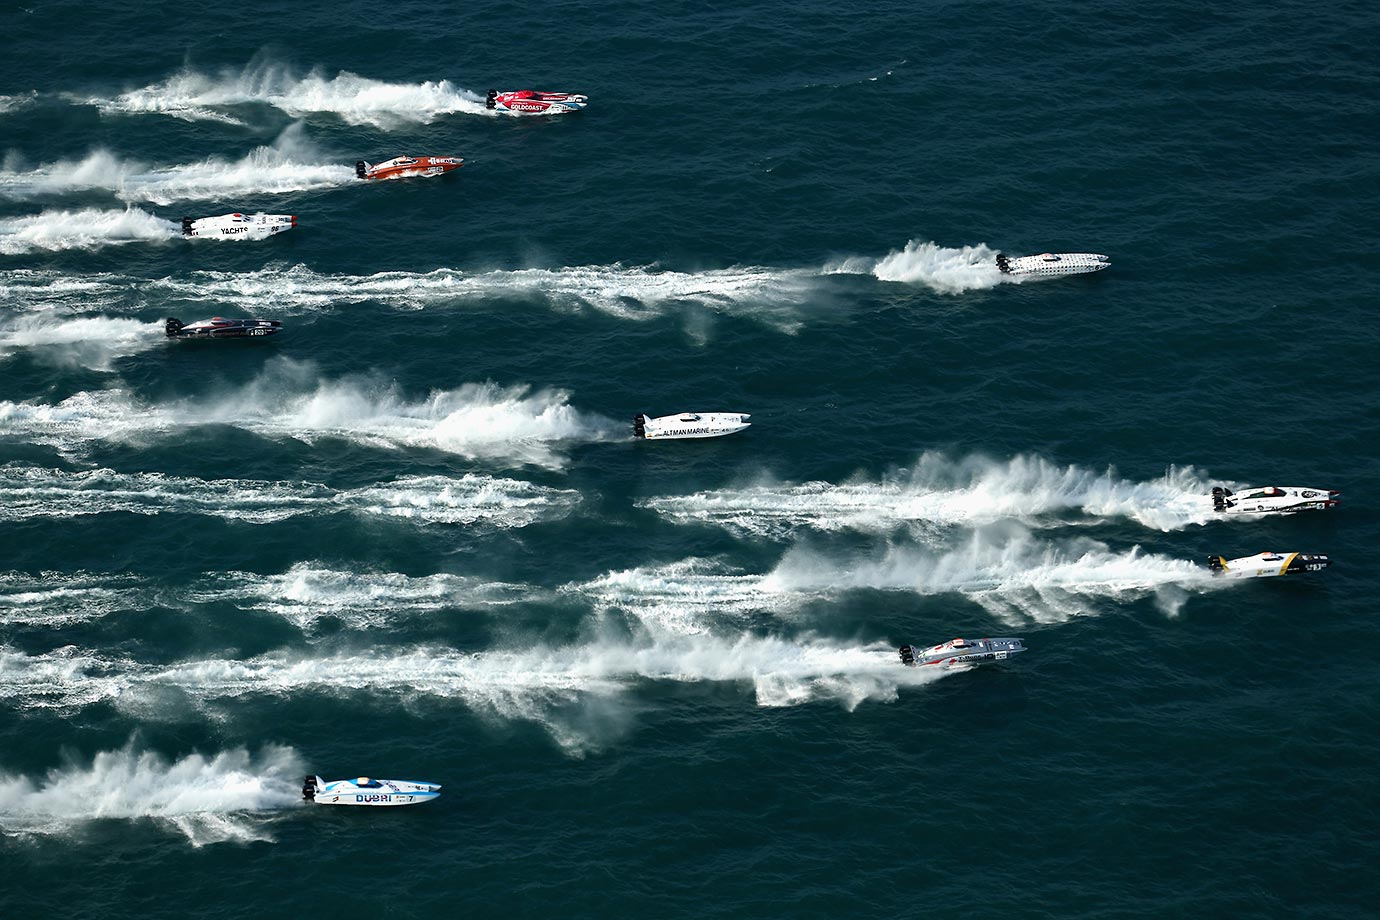 Competitors racing in the Abu Dhabi Grand Prix of the UIM XCAT World Series, where 14 boats are competing. XCAT, short for extreme catamaran, is one of the most challenging and extreme forms of powerboat racing in the world.